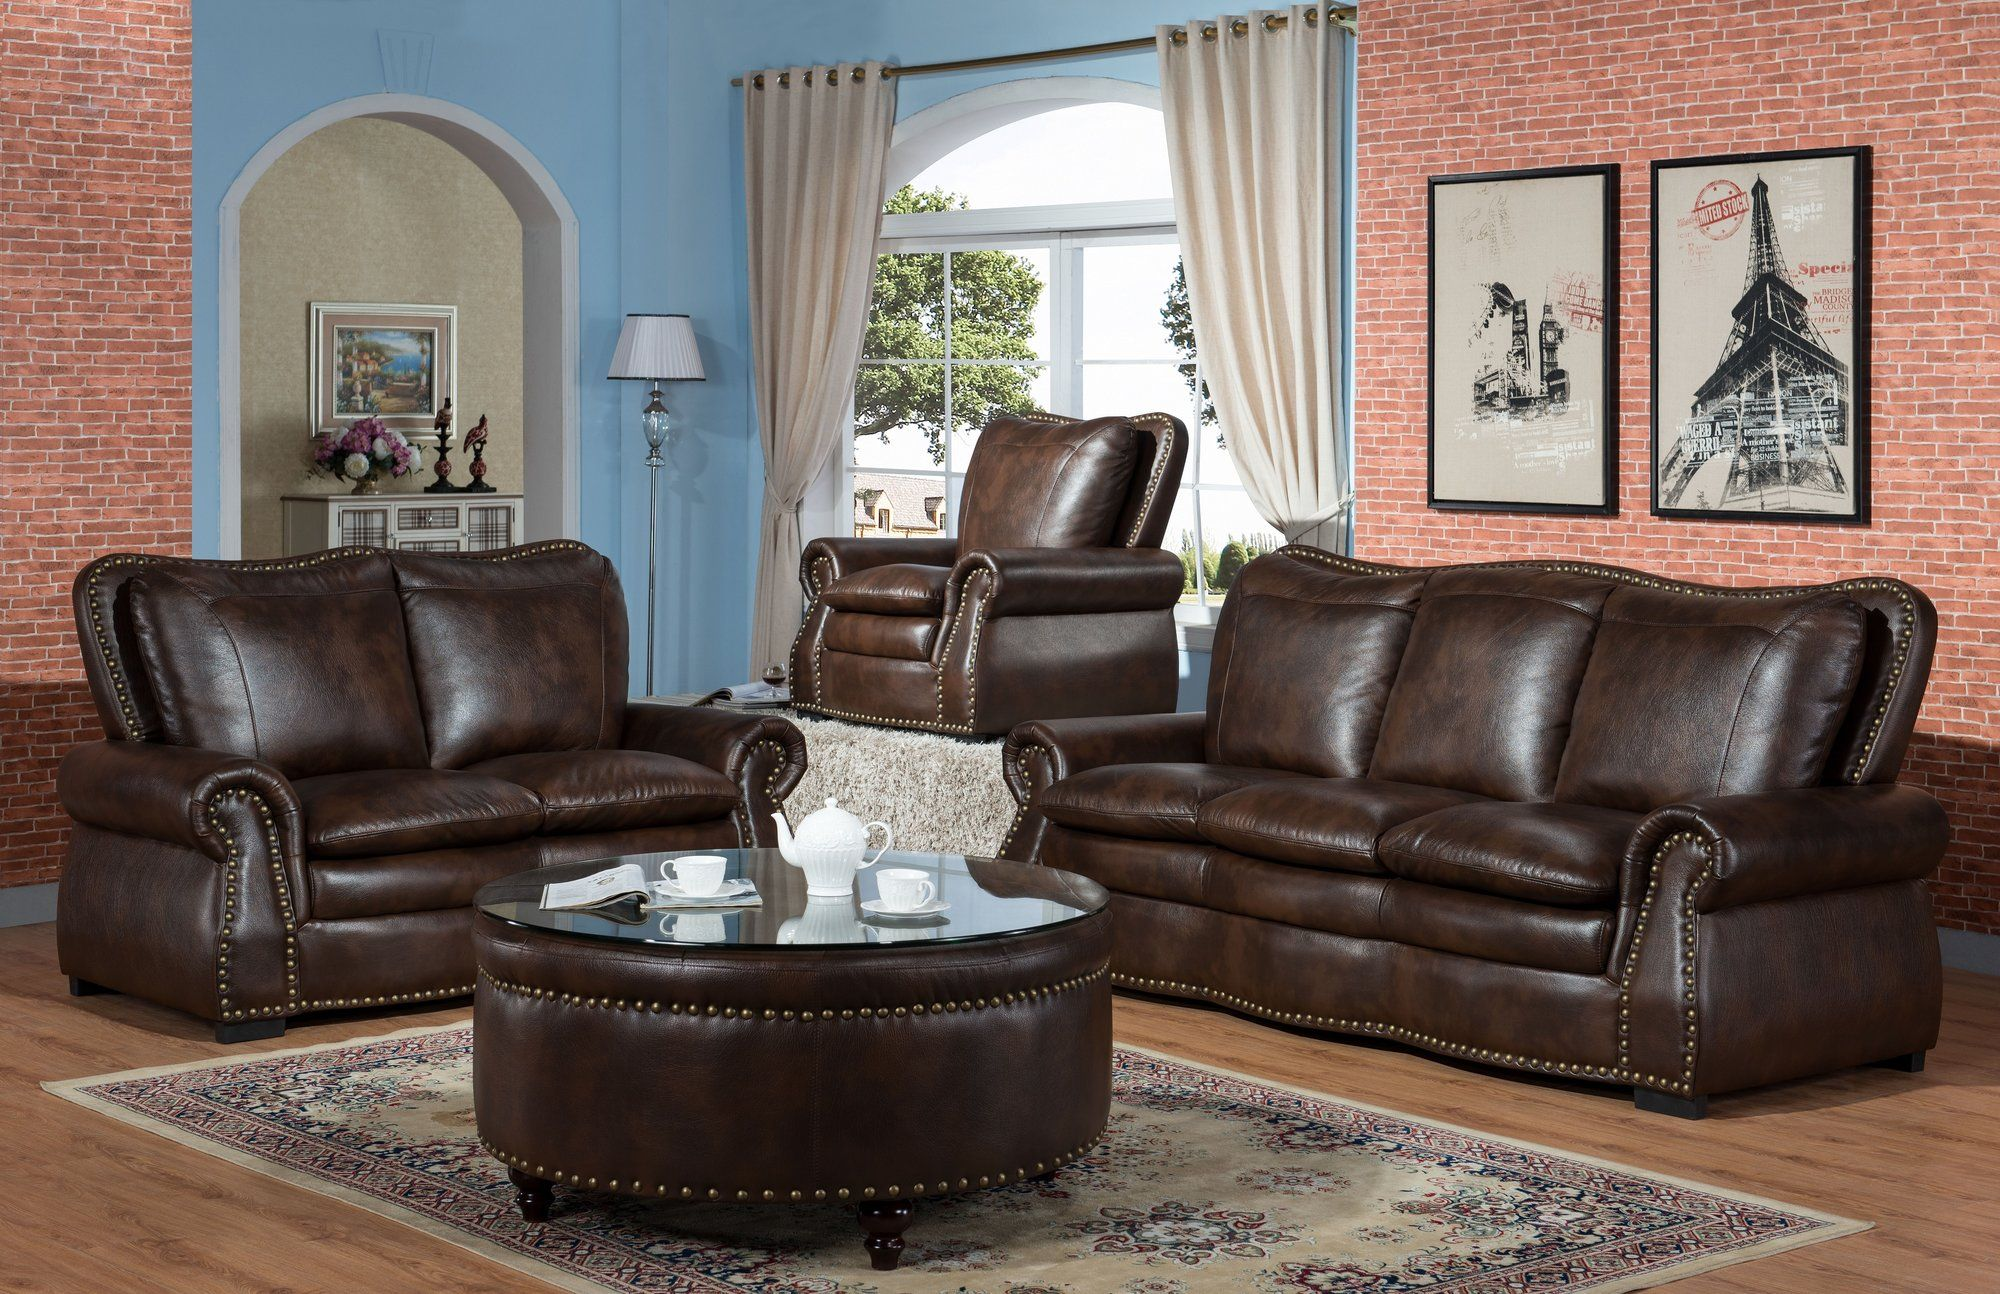 Peachy American Heritage Sofa And Loveseat Set Products Cjindustries Chair Design For Home Cjindustriesco